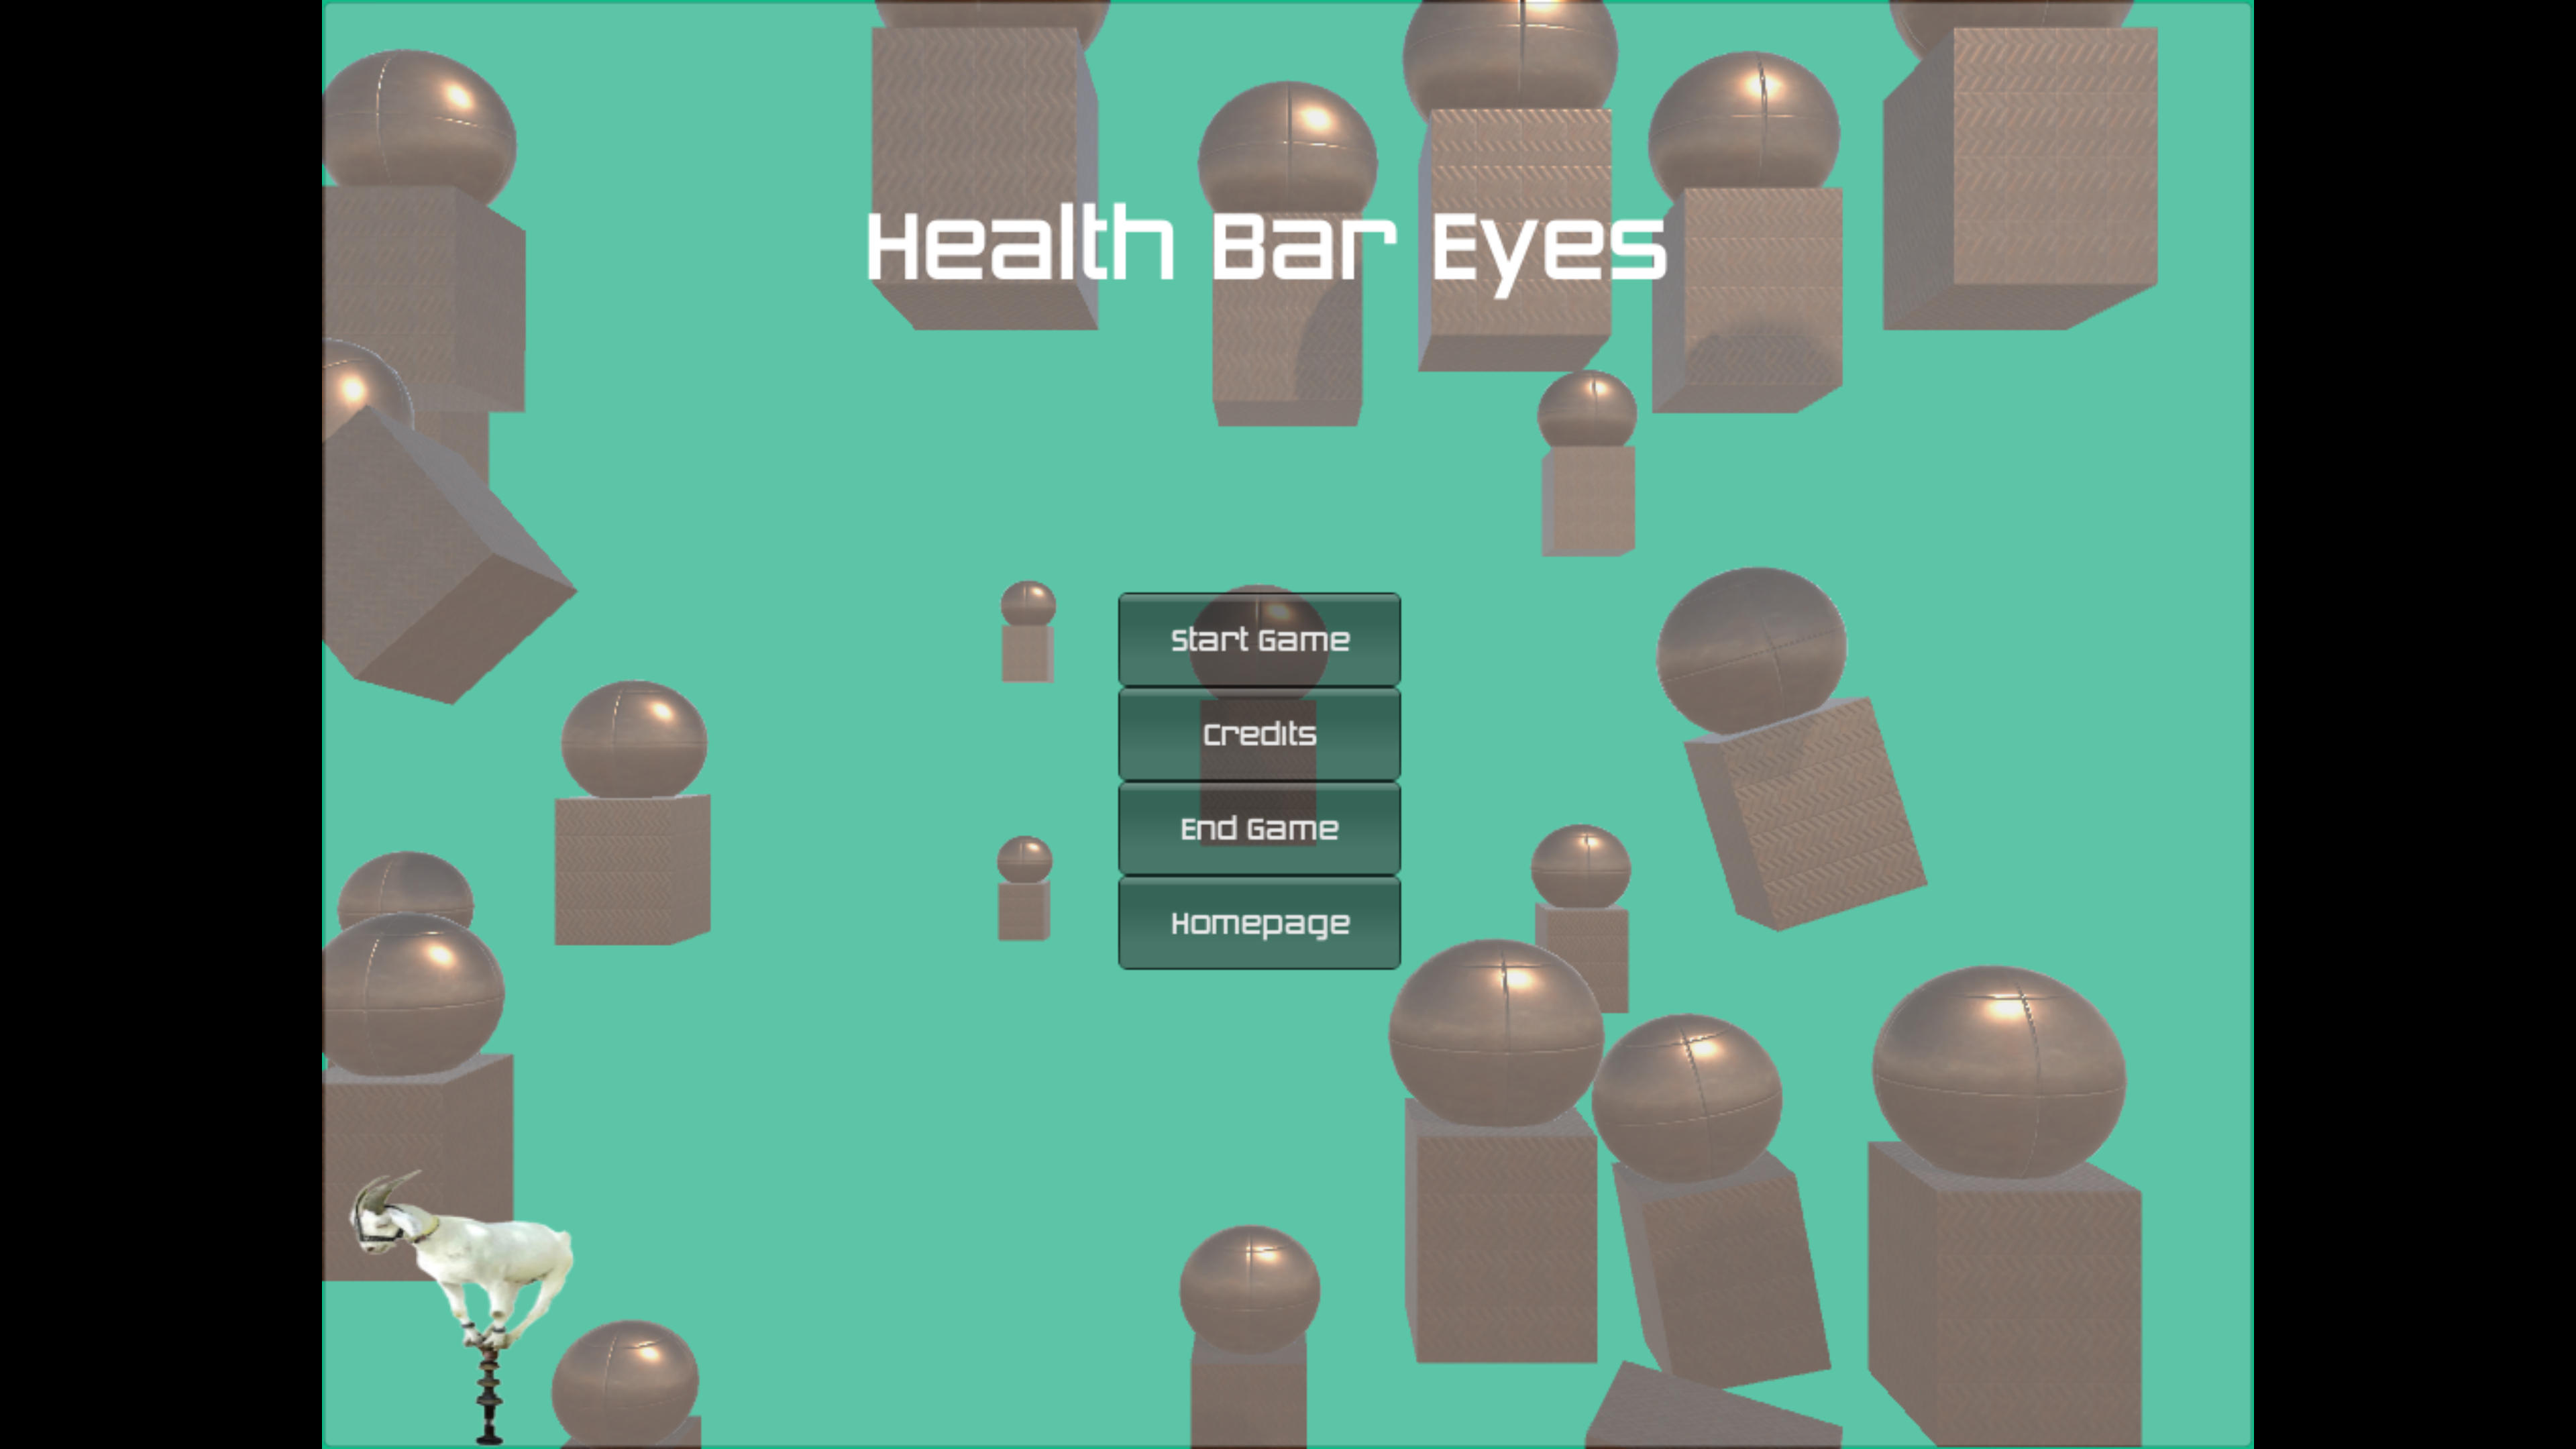 Health Bar Eyes